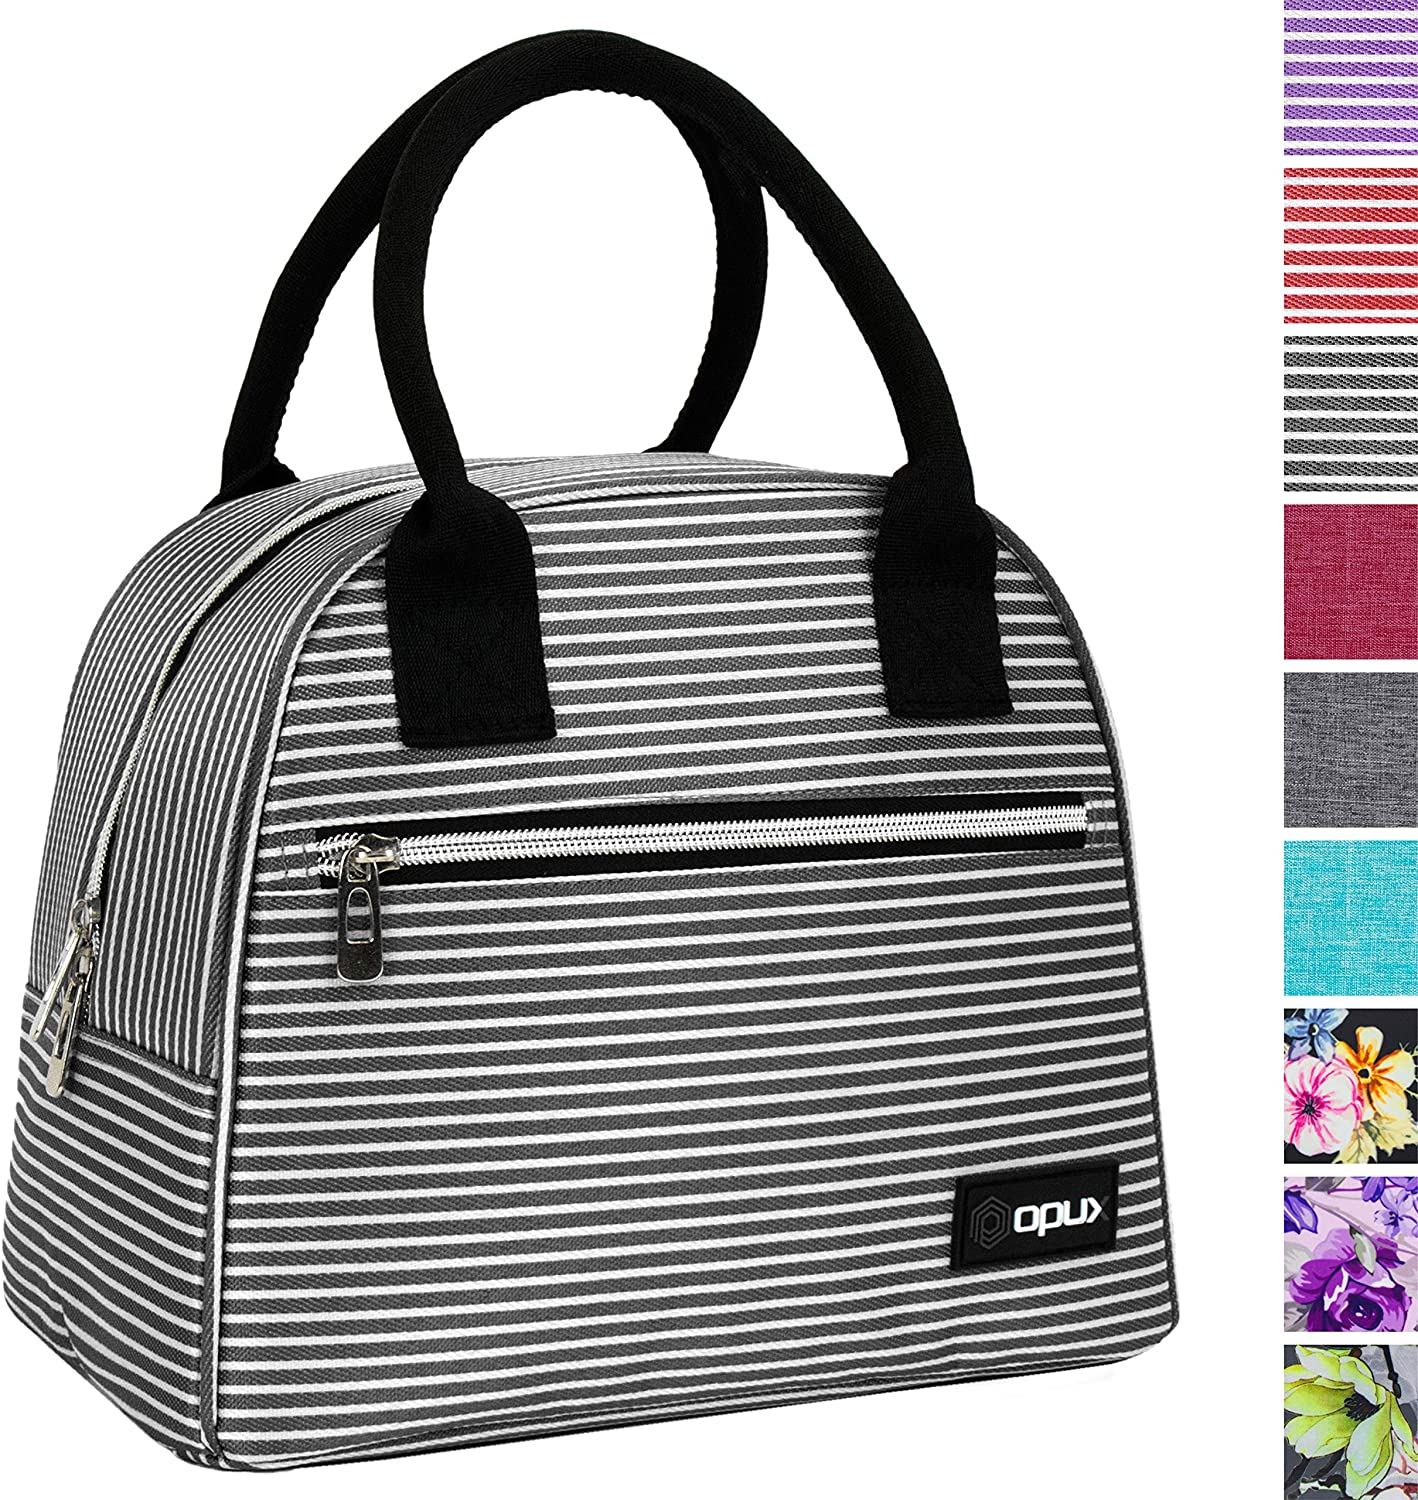 OPUX Lunch Box for Women | Insulated Lunch Bag Tote for Girls, Ladies, Teens | Cute Lunch Carrier Purse Cooler for School, Work, Office | Fits 12 Cans (Black White Stripes)